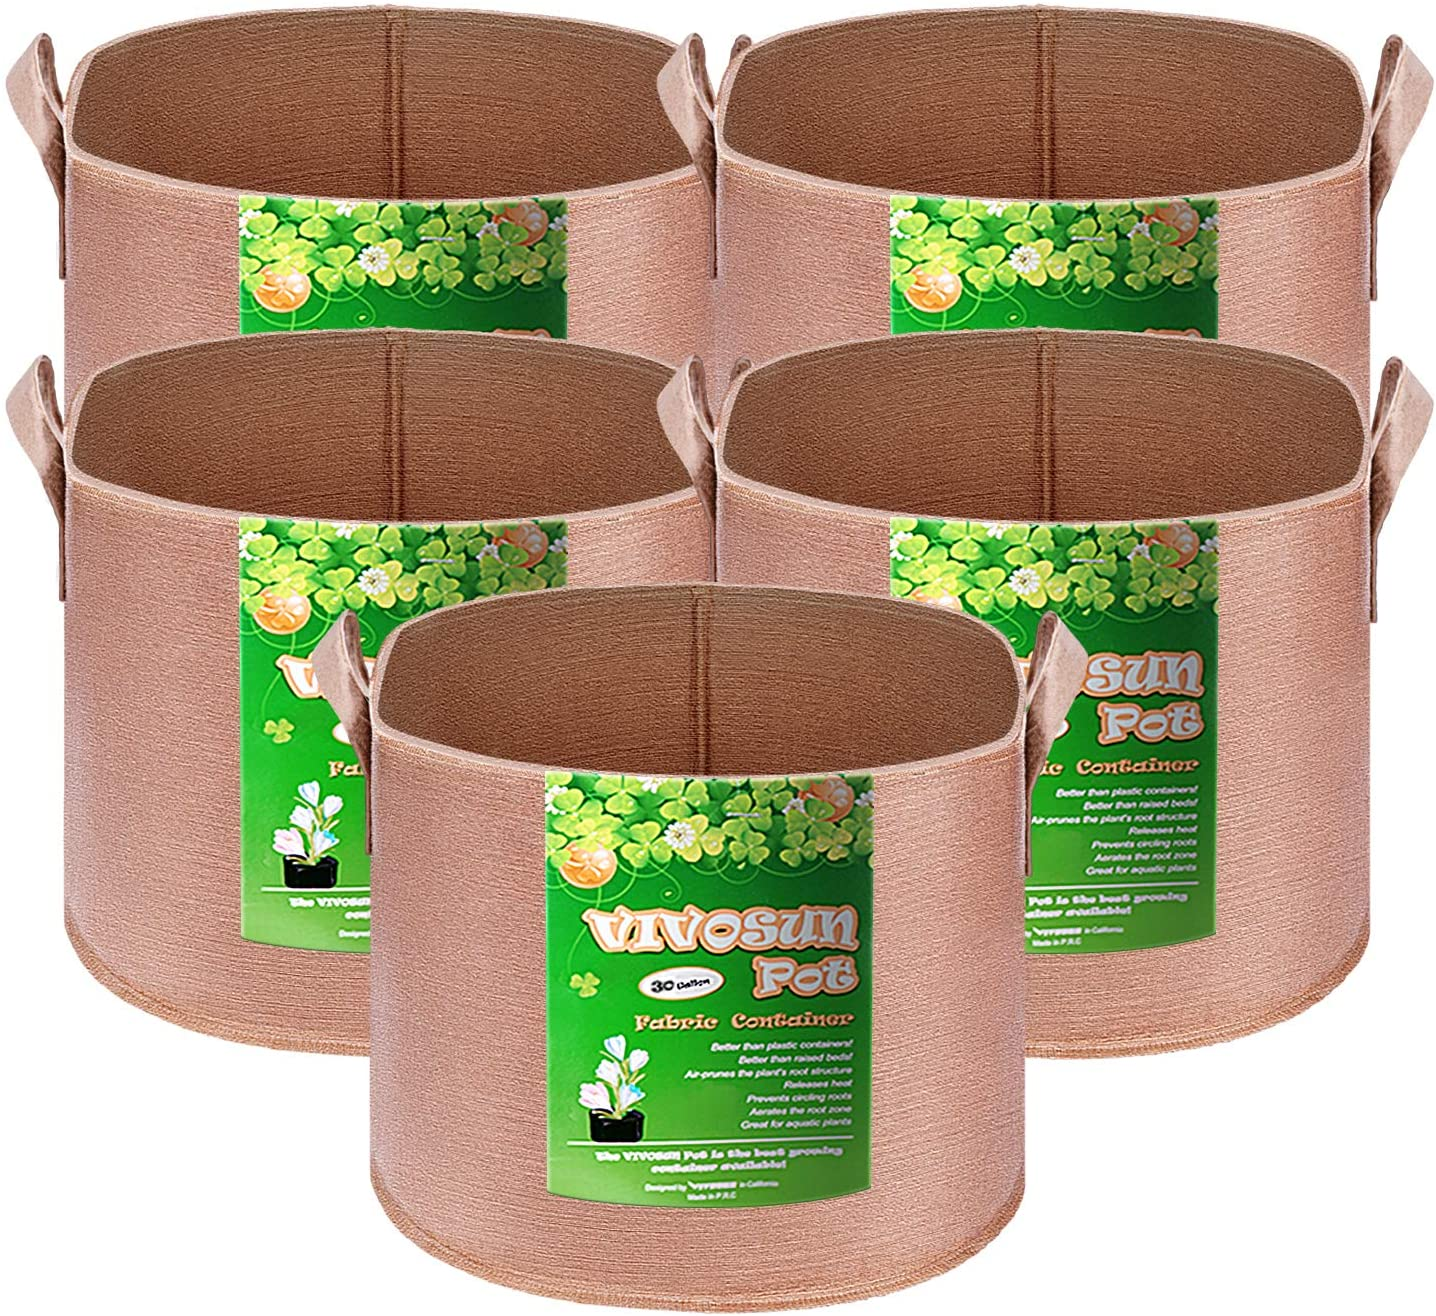 VIVOSUN 5-Pack 30 Animer and price Gifts revision Gallons Heavy Duty Fabric Thickened Nonwoven P